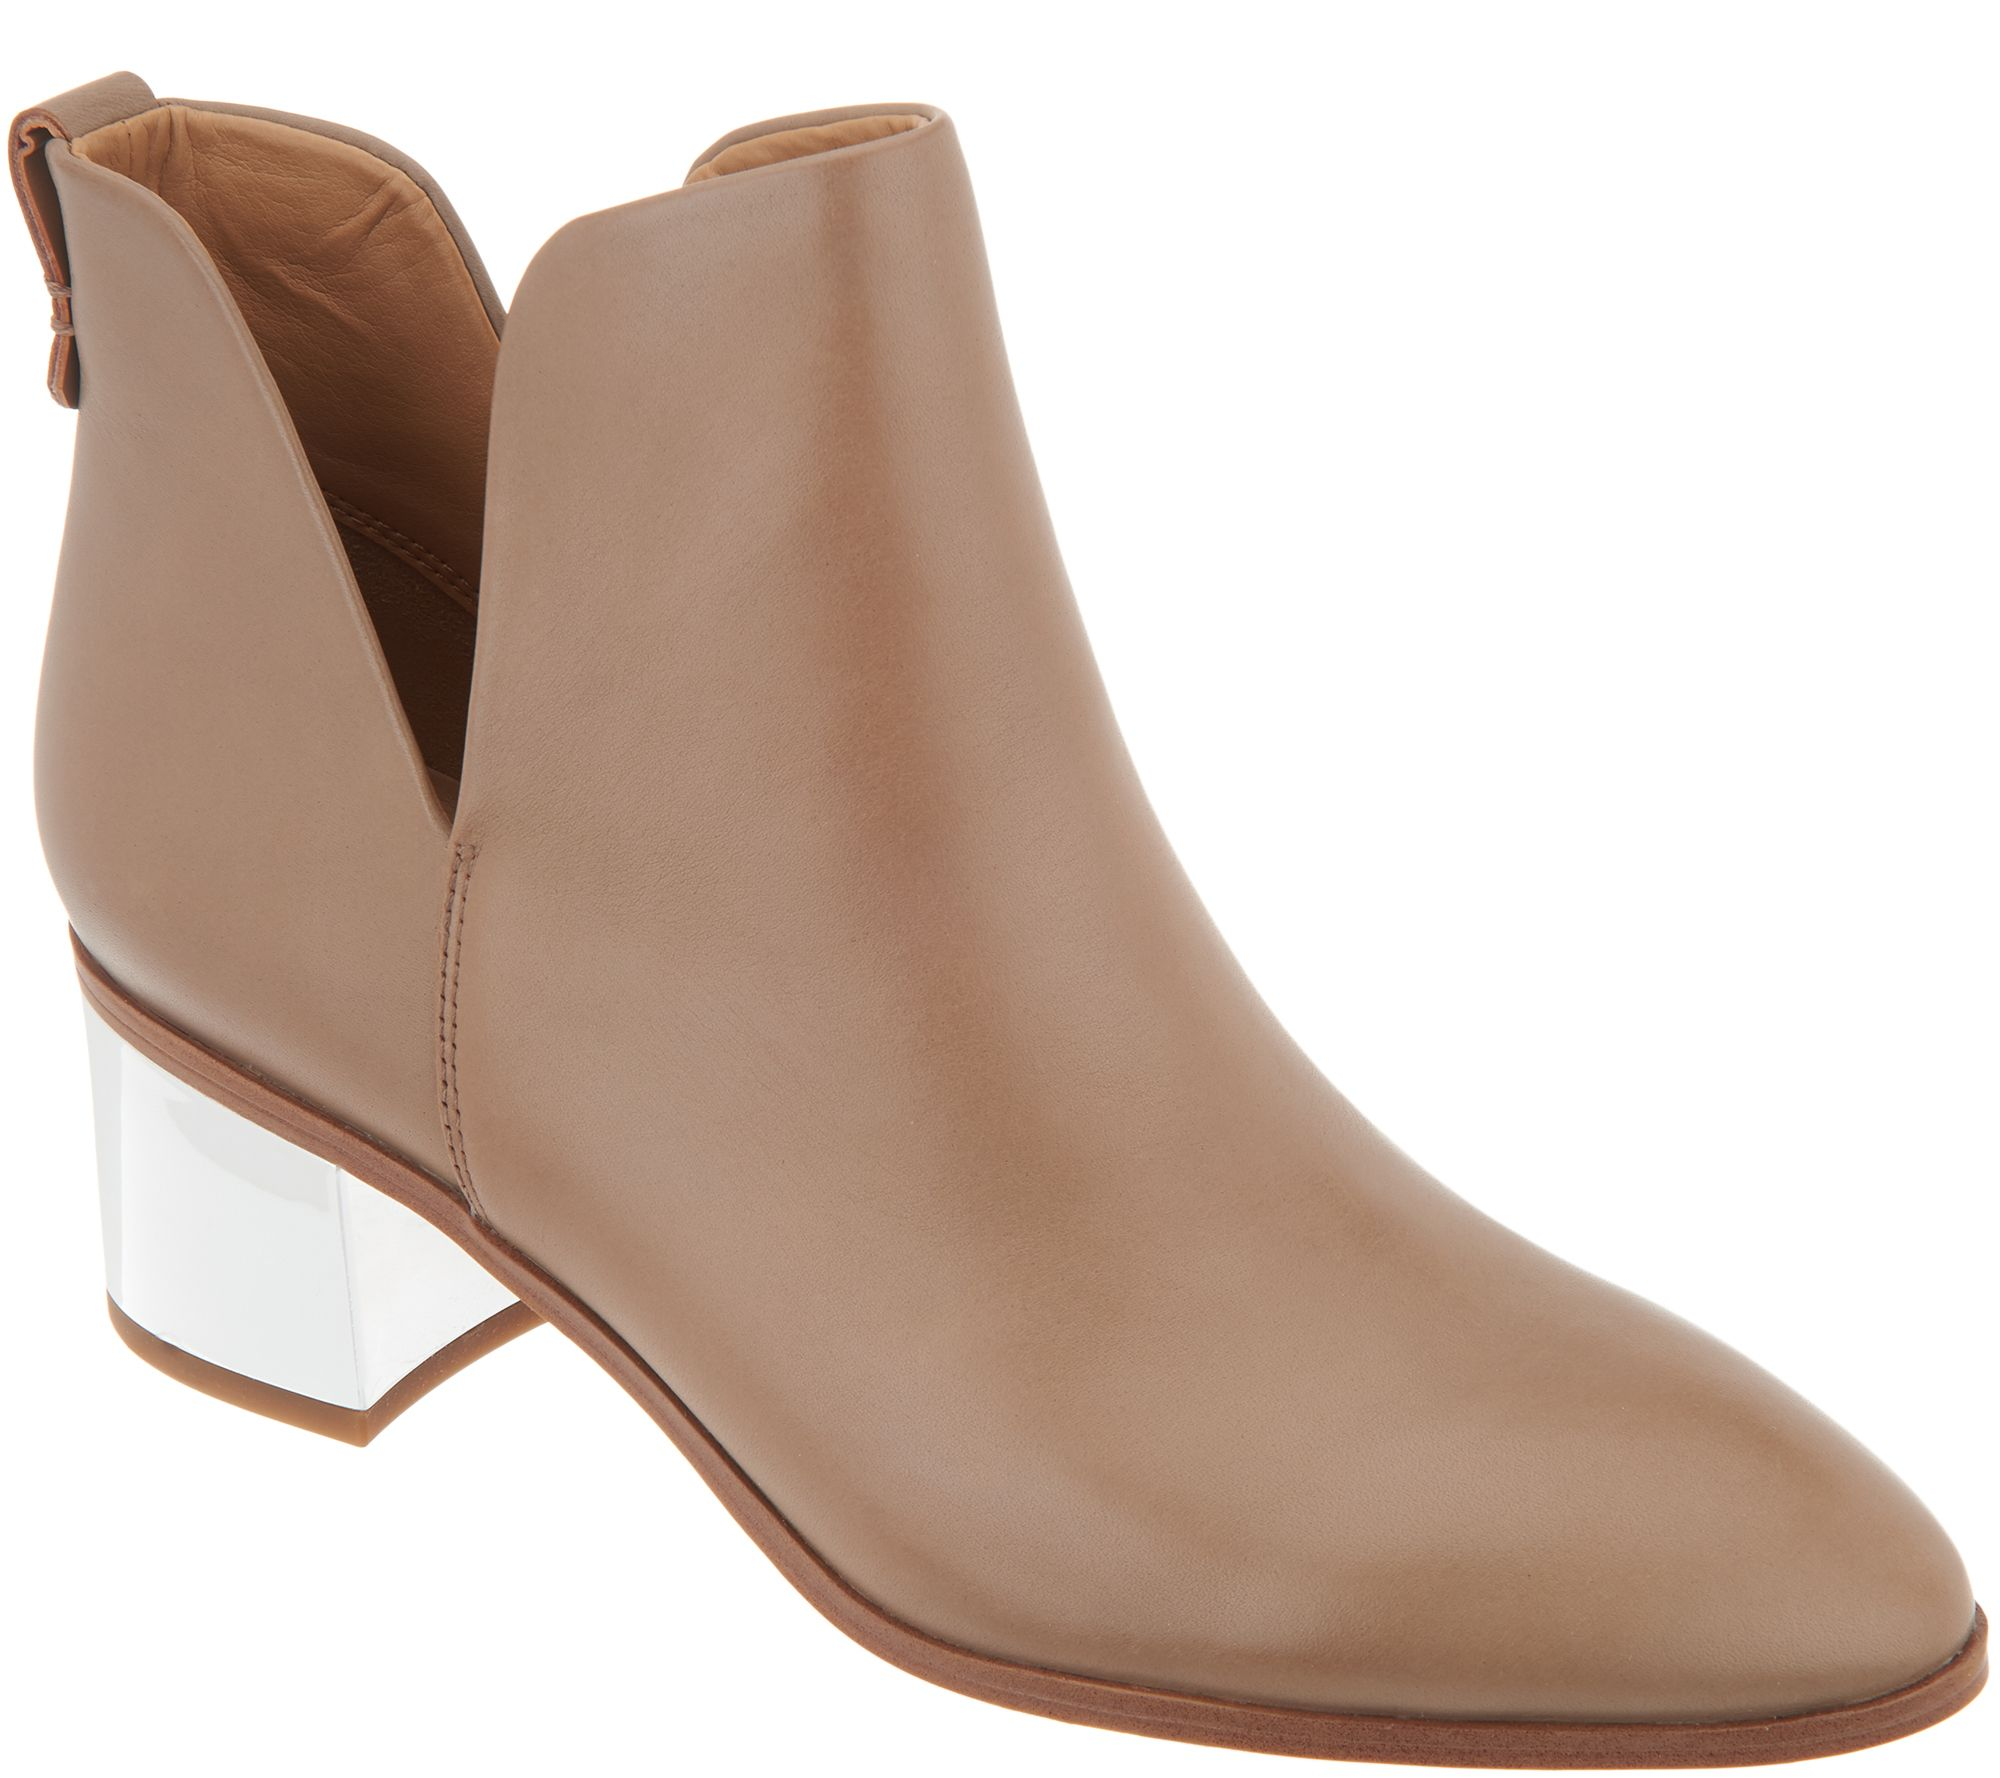 2e8d6e8f265 Franco Sarto Leather or Suede Boots - Reeve - Page 1 — QVC.com